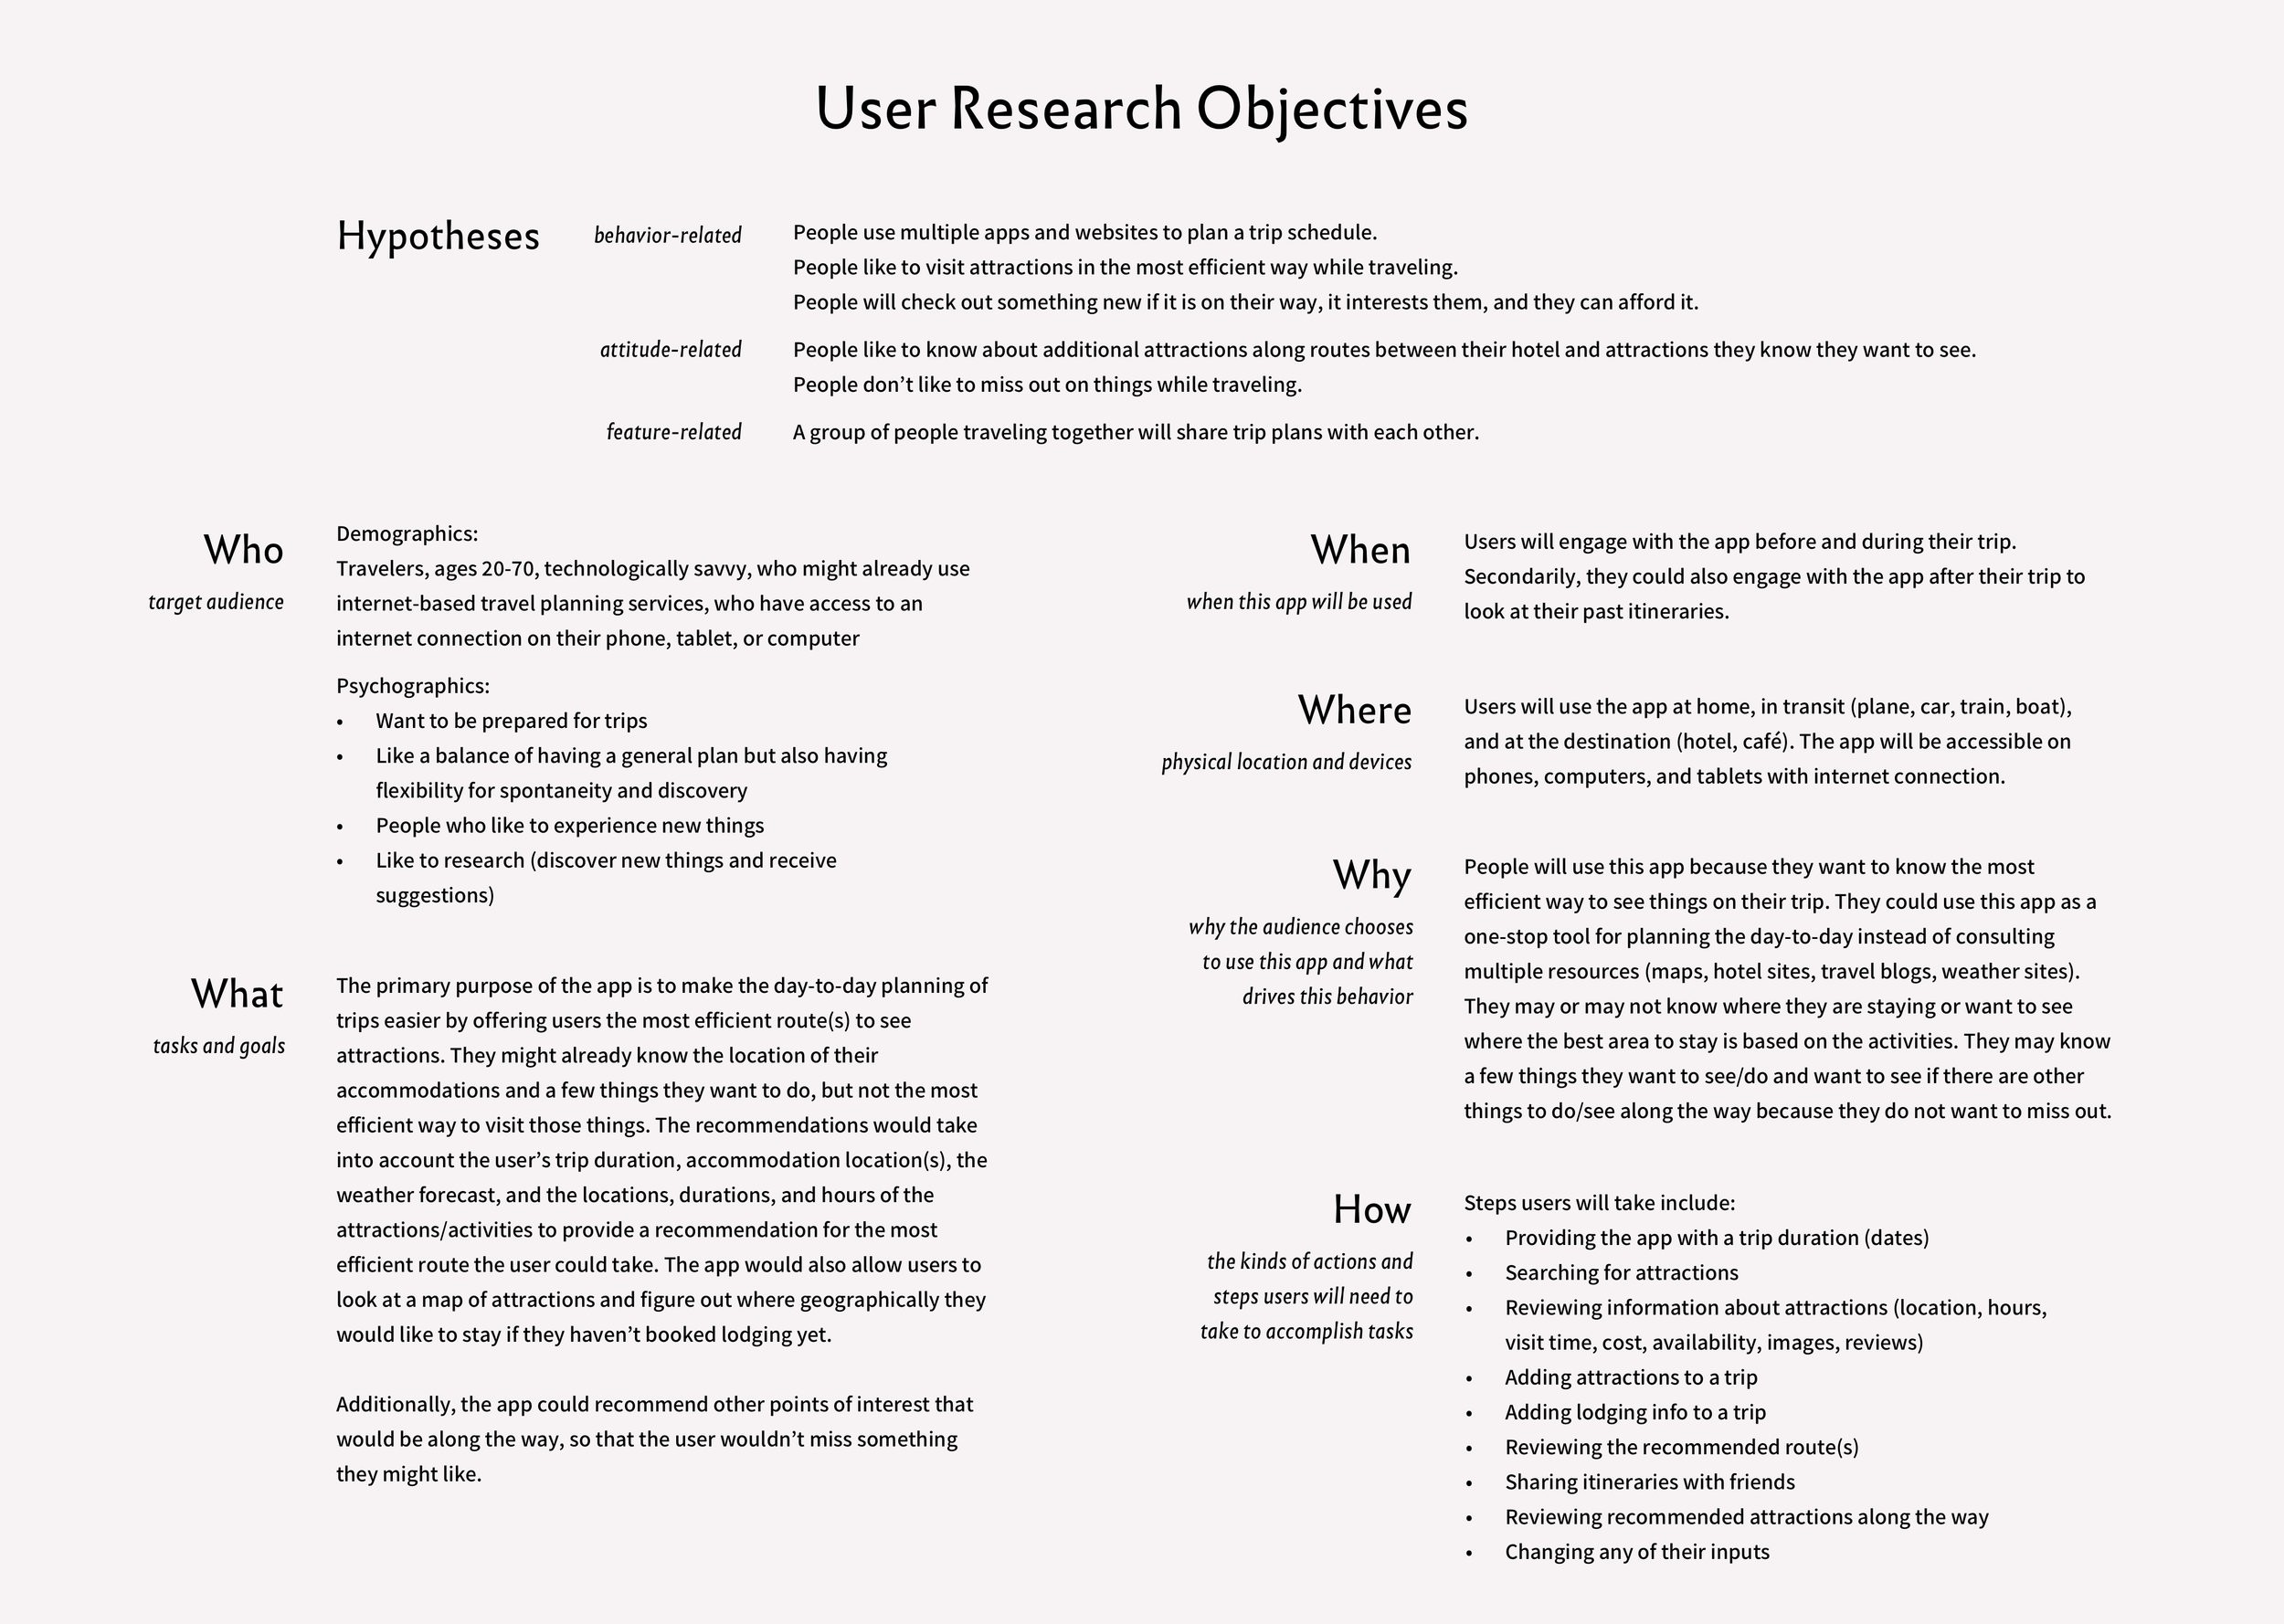 User research objectives and hypotheses.jpg